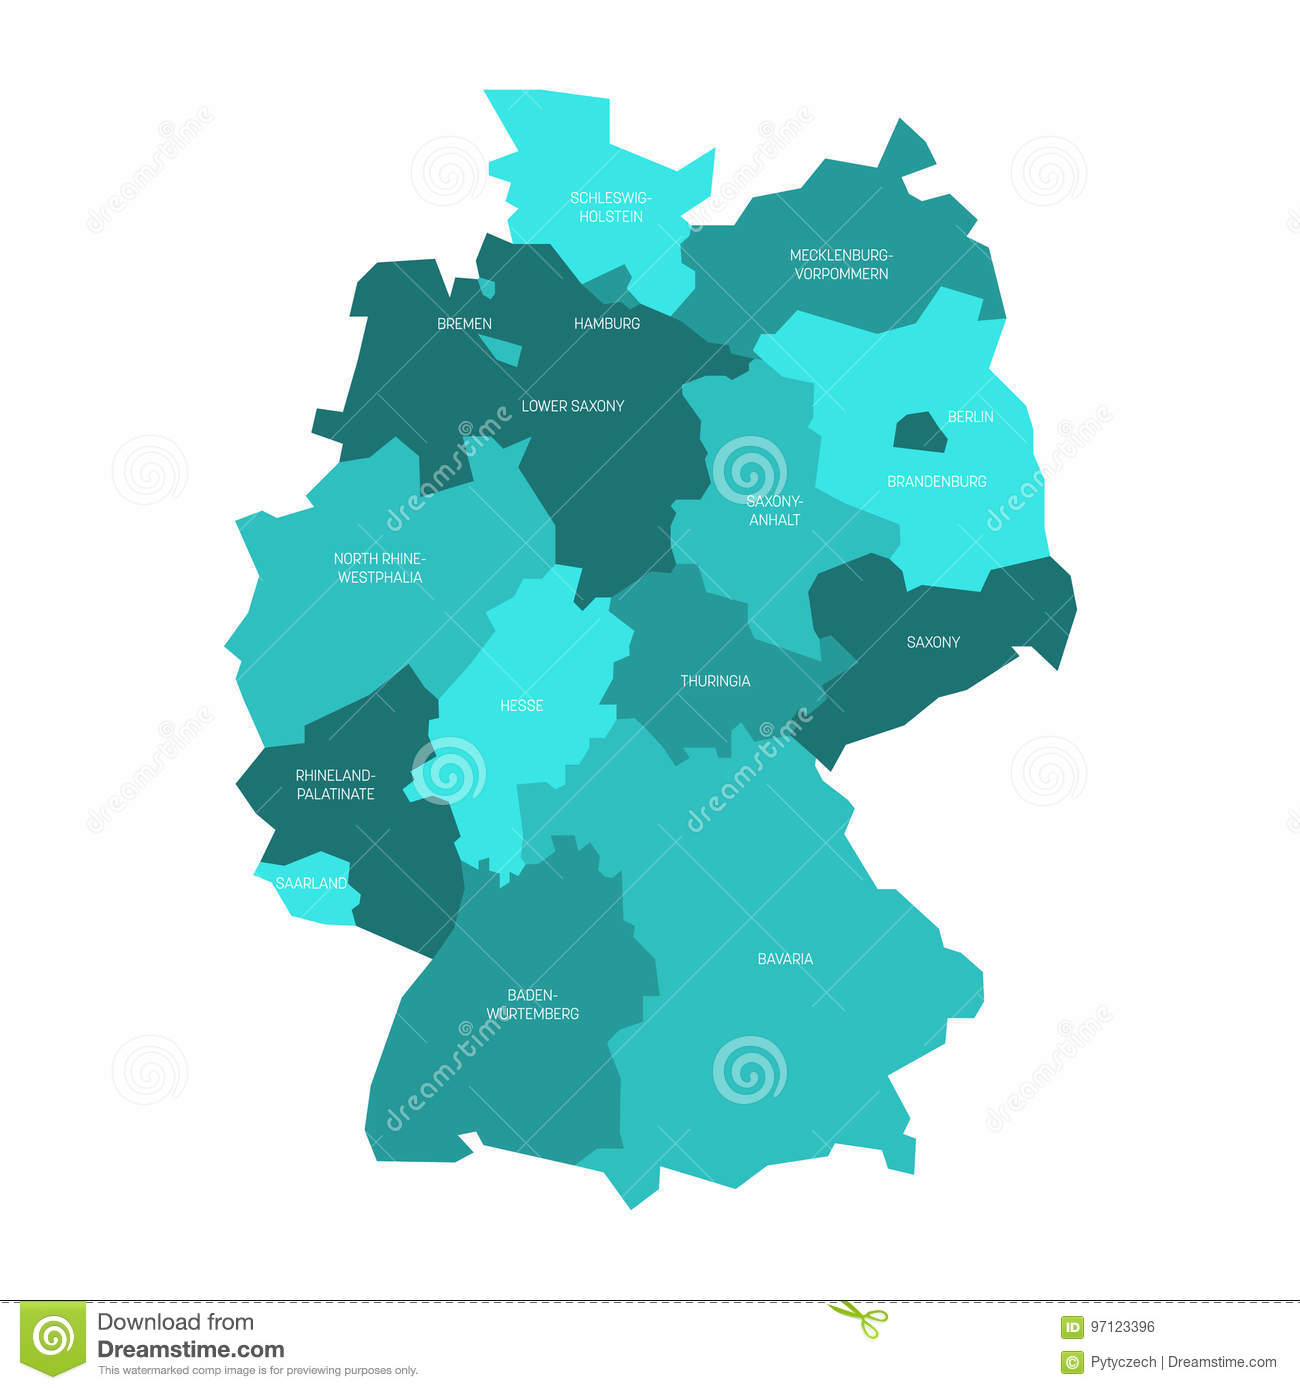 Map Of Germany Divided.Map Of Germany Divided To 13 Federal States And 3 City States